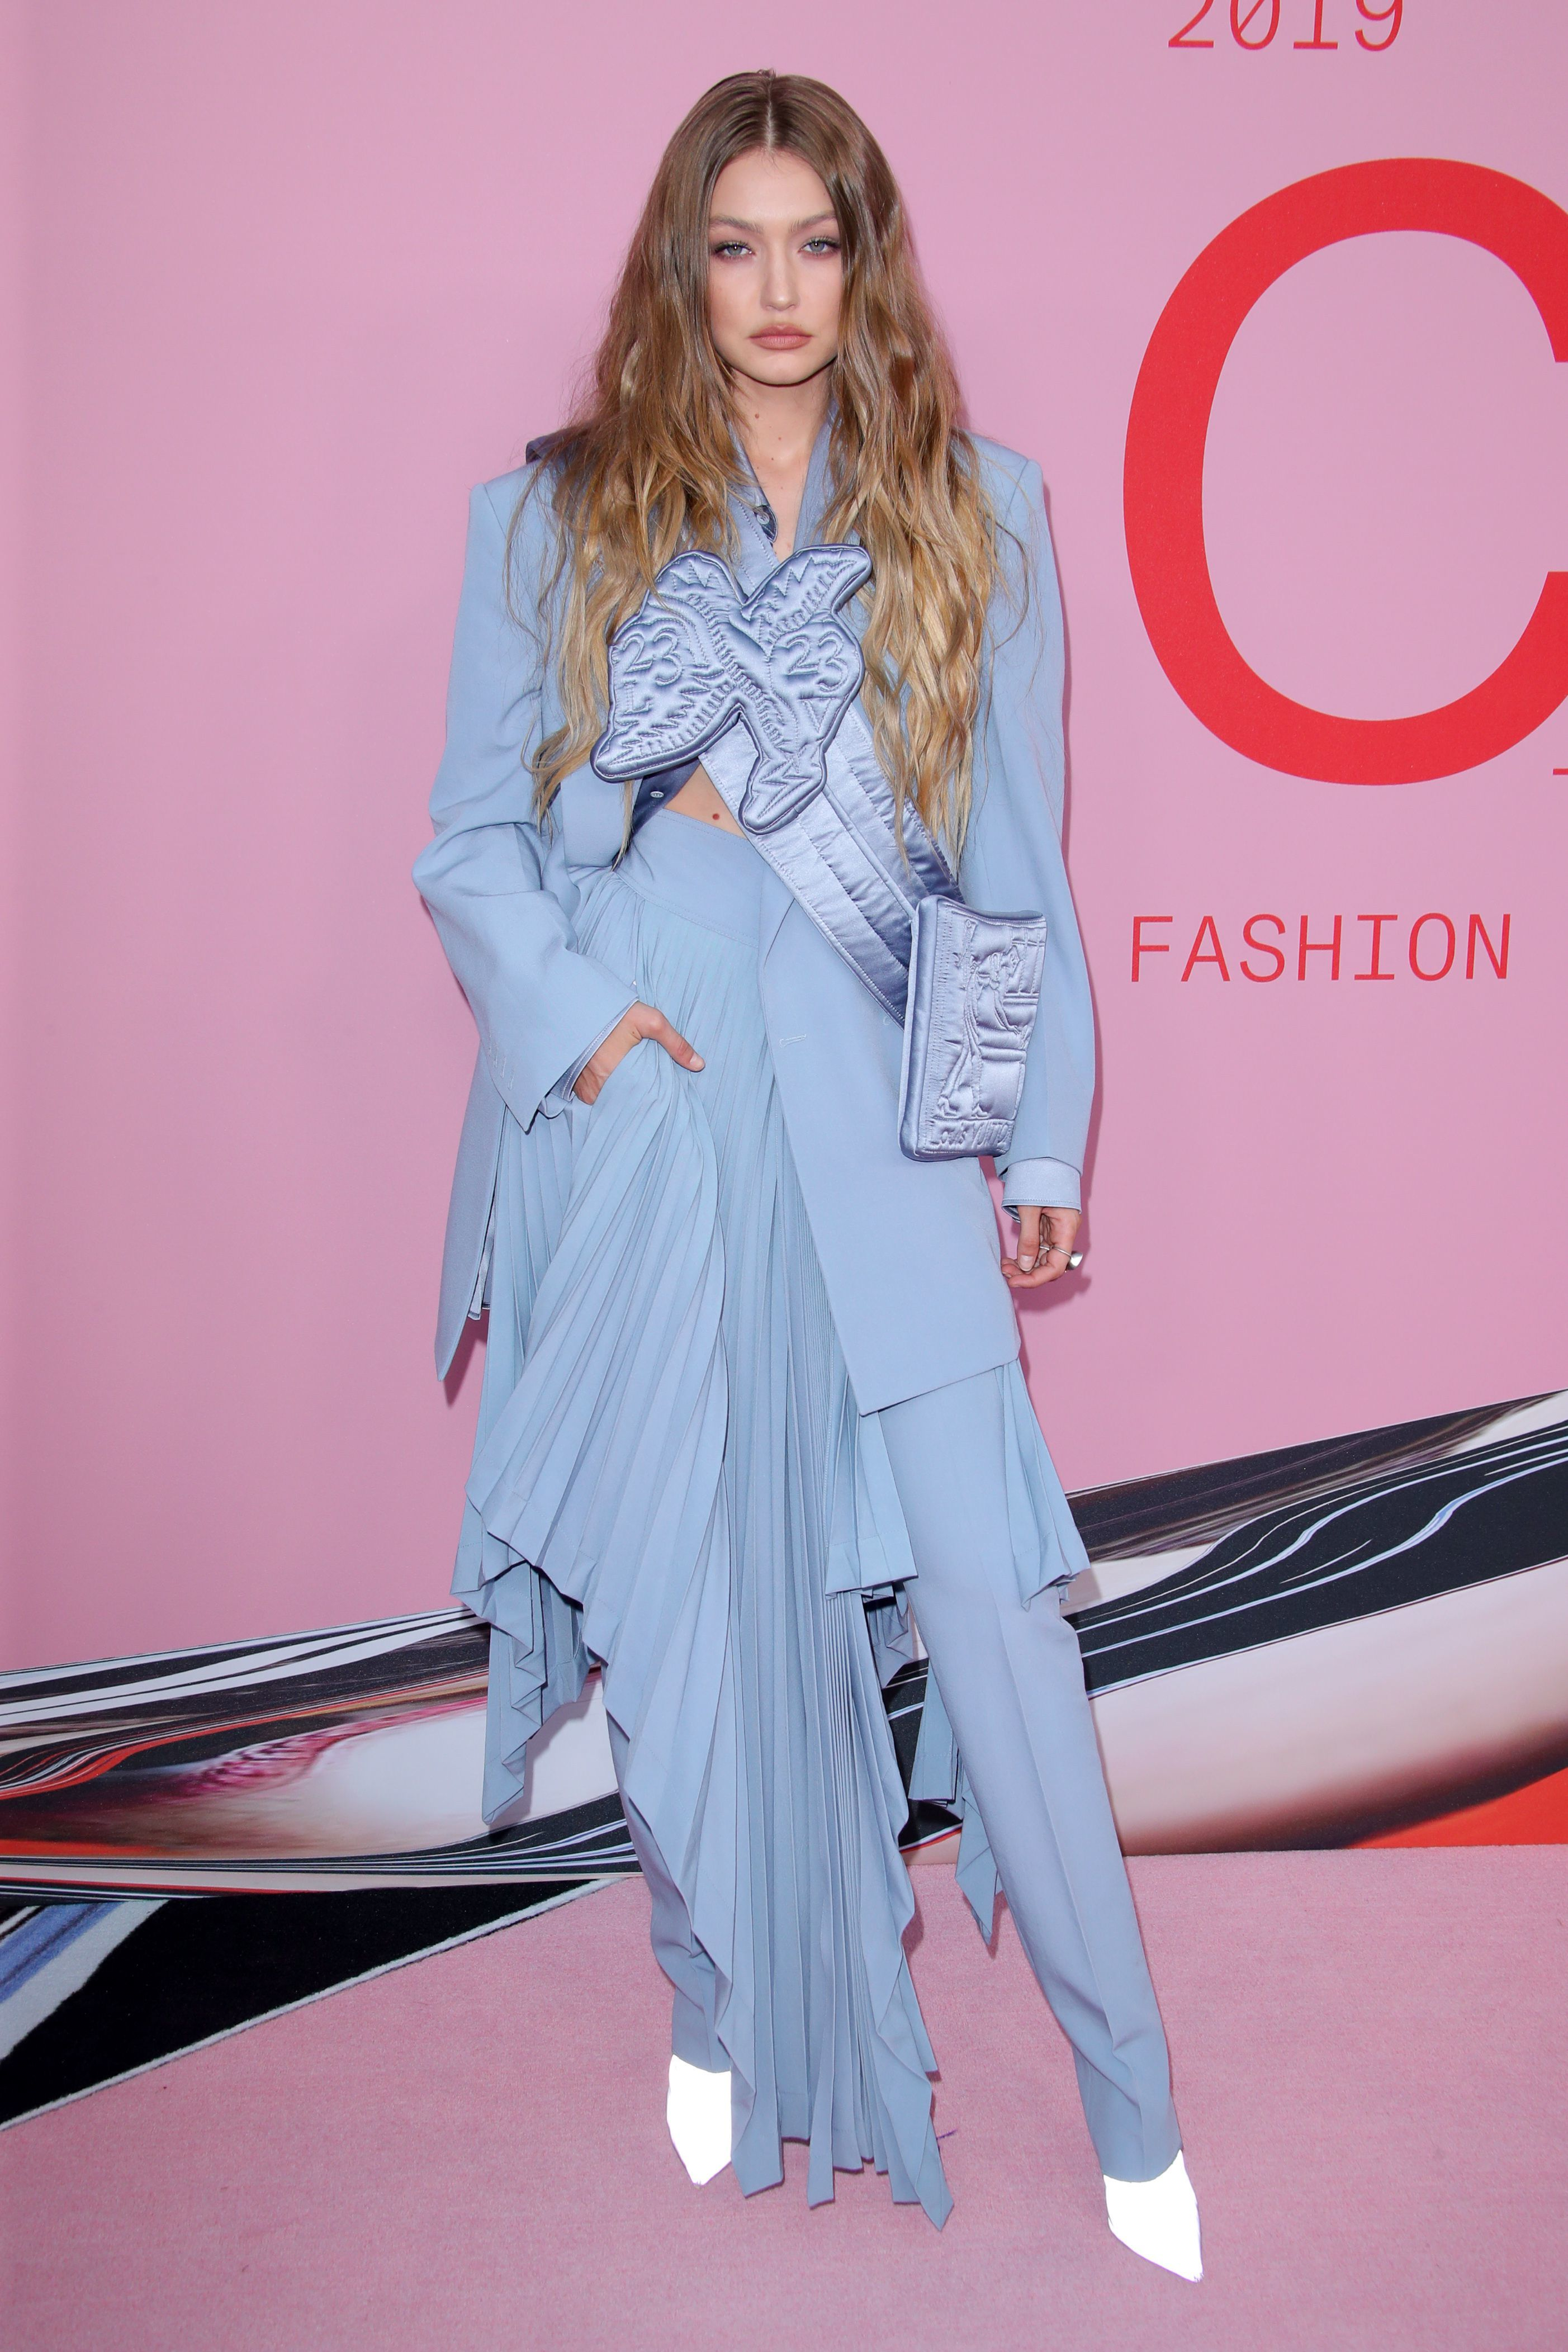 Gigi Hadid attends the CFDA Fashion Awards in New York City on June 3, 2019.